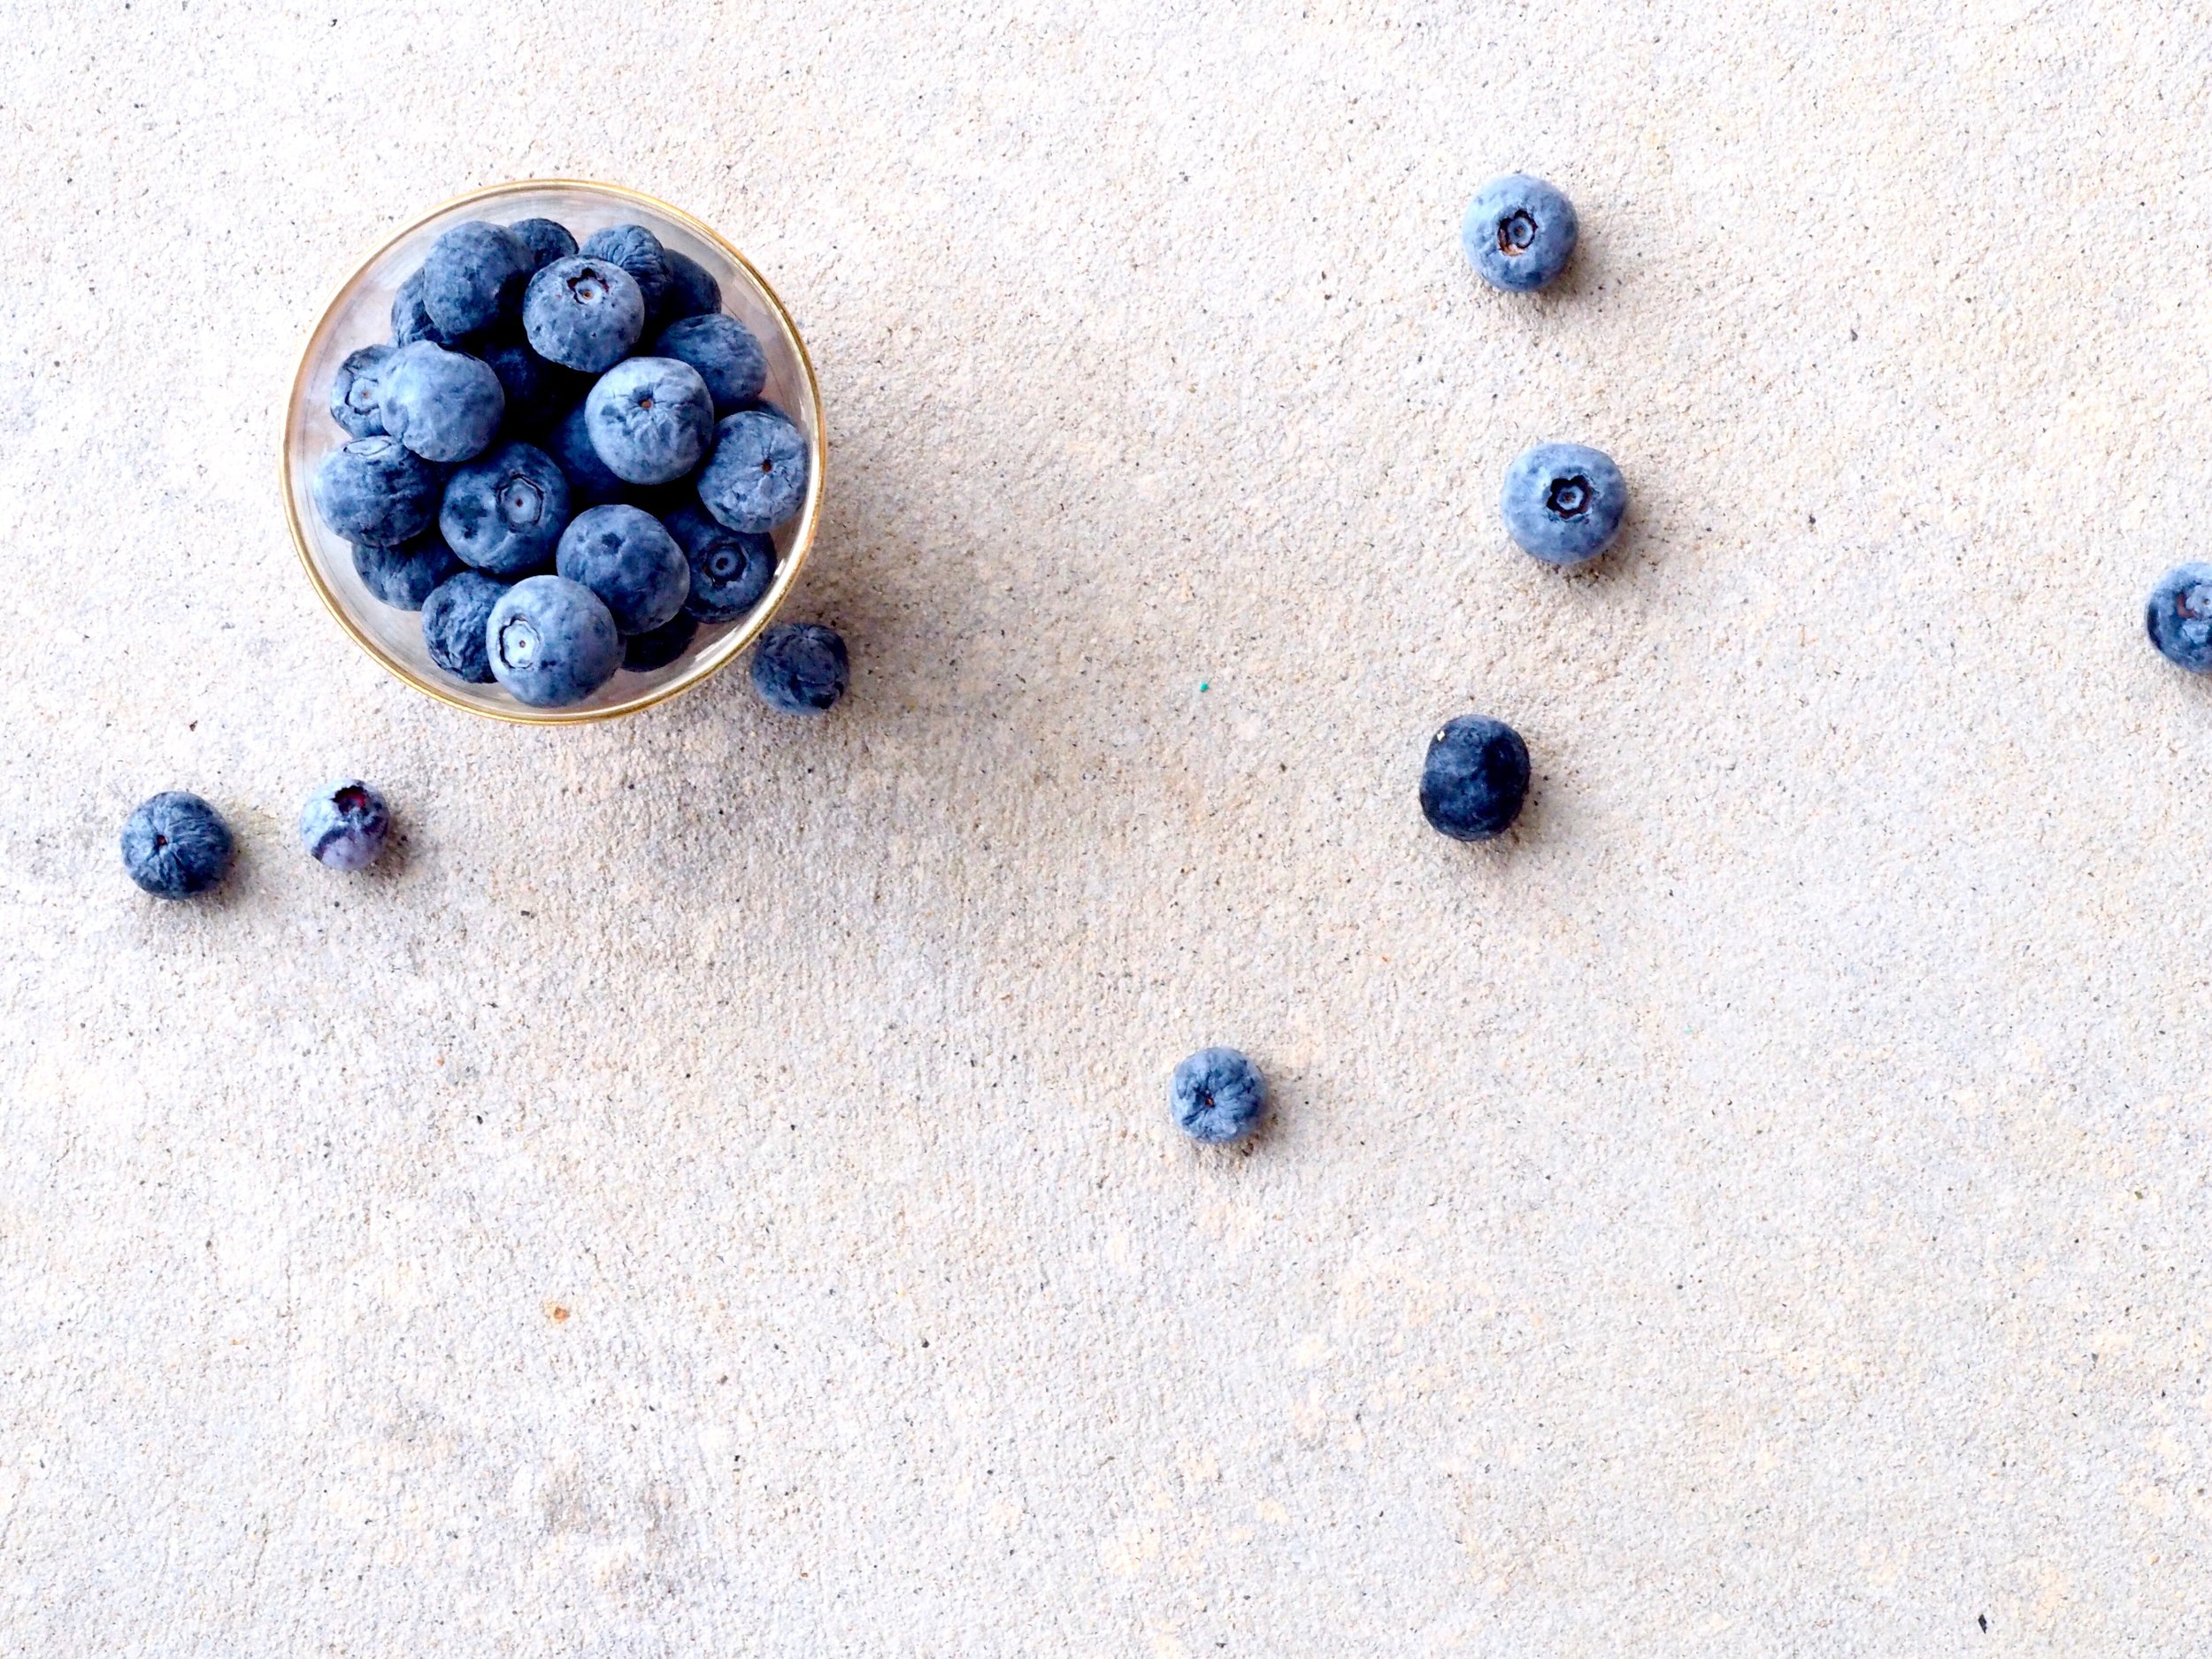 blueberries in a glass bowl.jpg